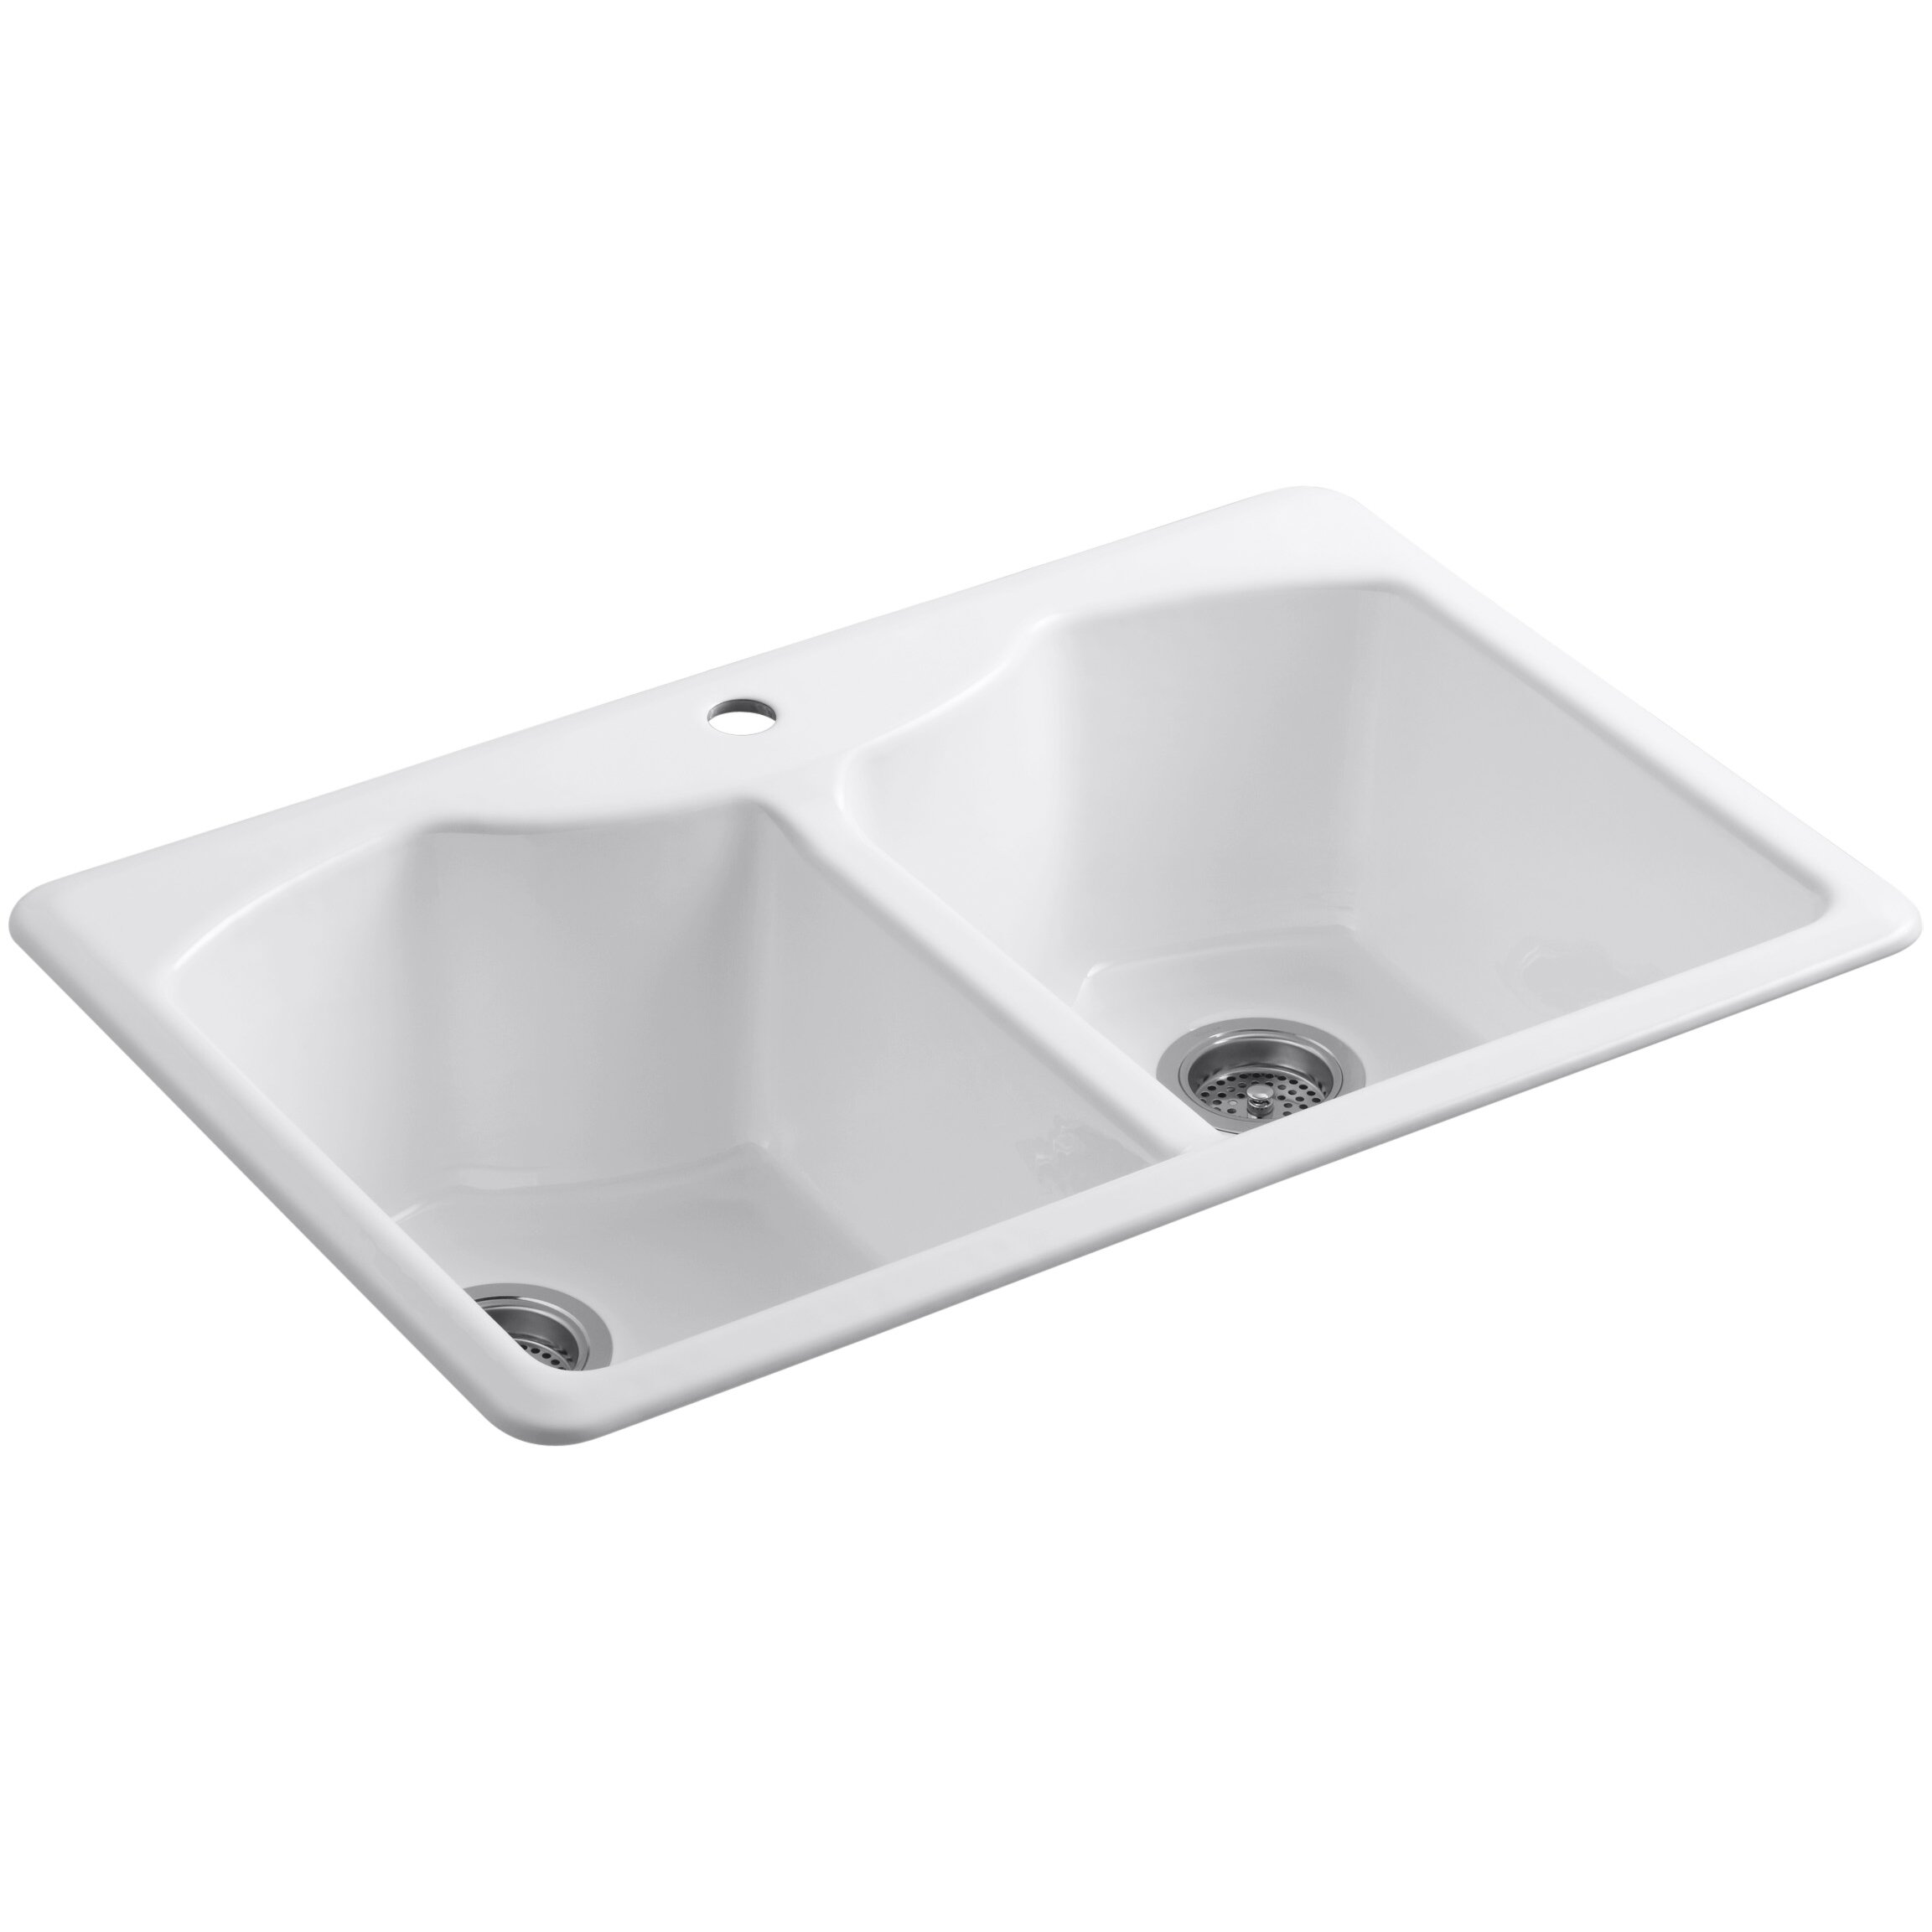 "Kohler Bellegrove 33"" X 22"" X 9-5/8"" Top-Mount Double"